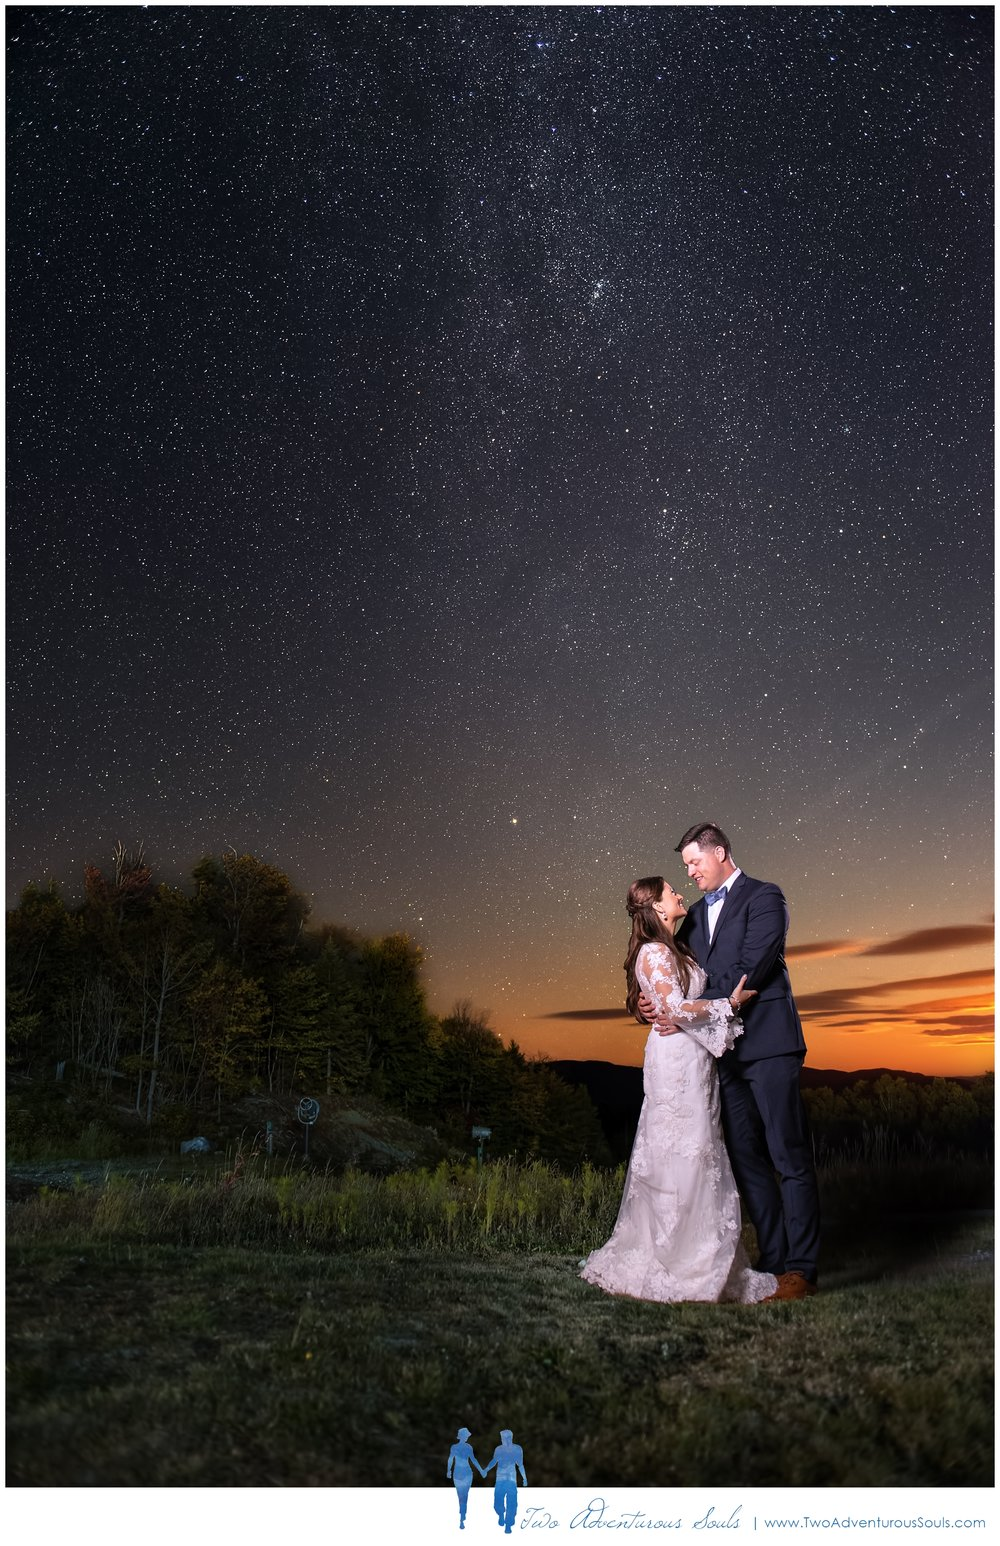 Made from 7 light frames (captured with a NIKON CORPORATION camera) by Starry Landscape Stacker 1.6.4.  Algorithm: Median